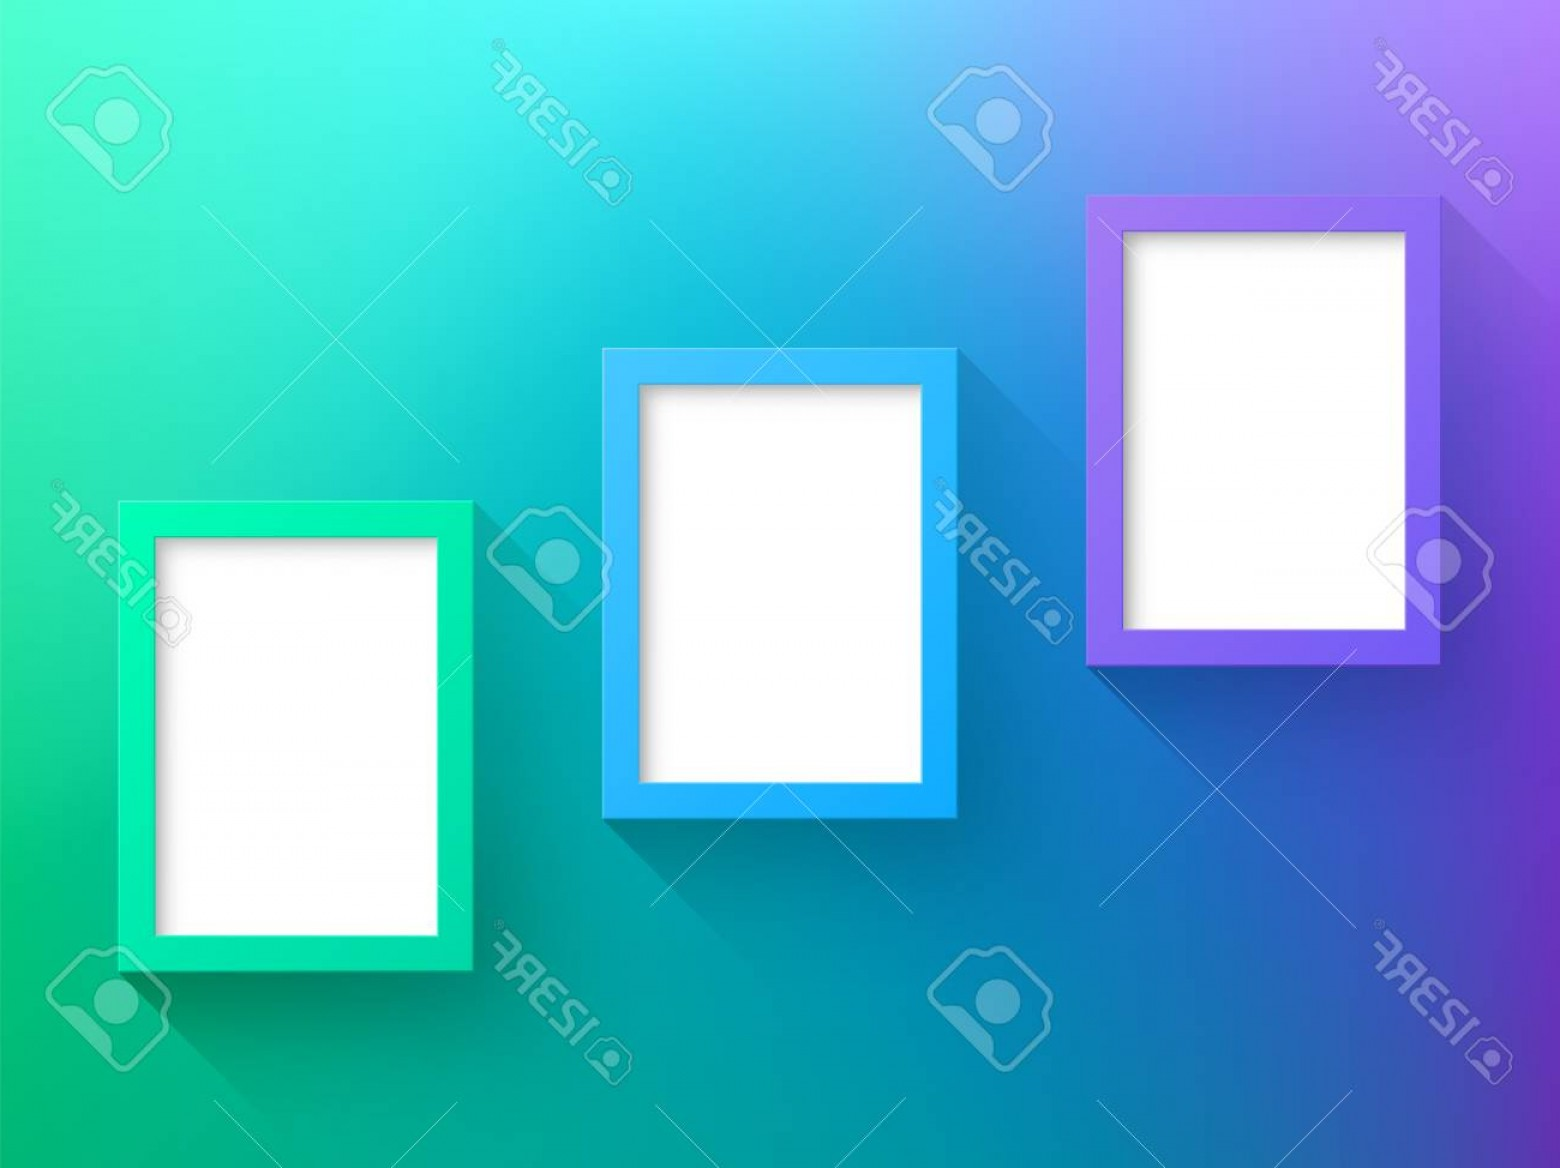 Purple Green And White Vector: Photovector Purple Green Frames Design With White Background